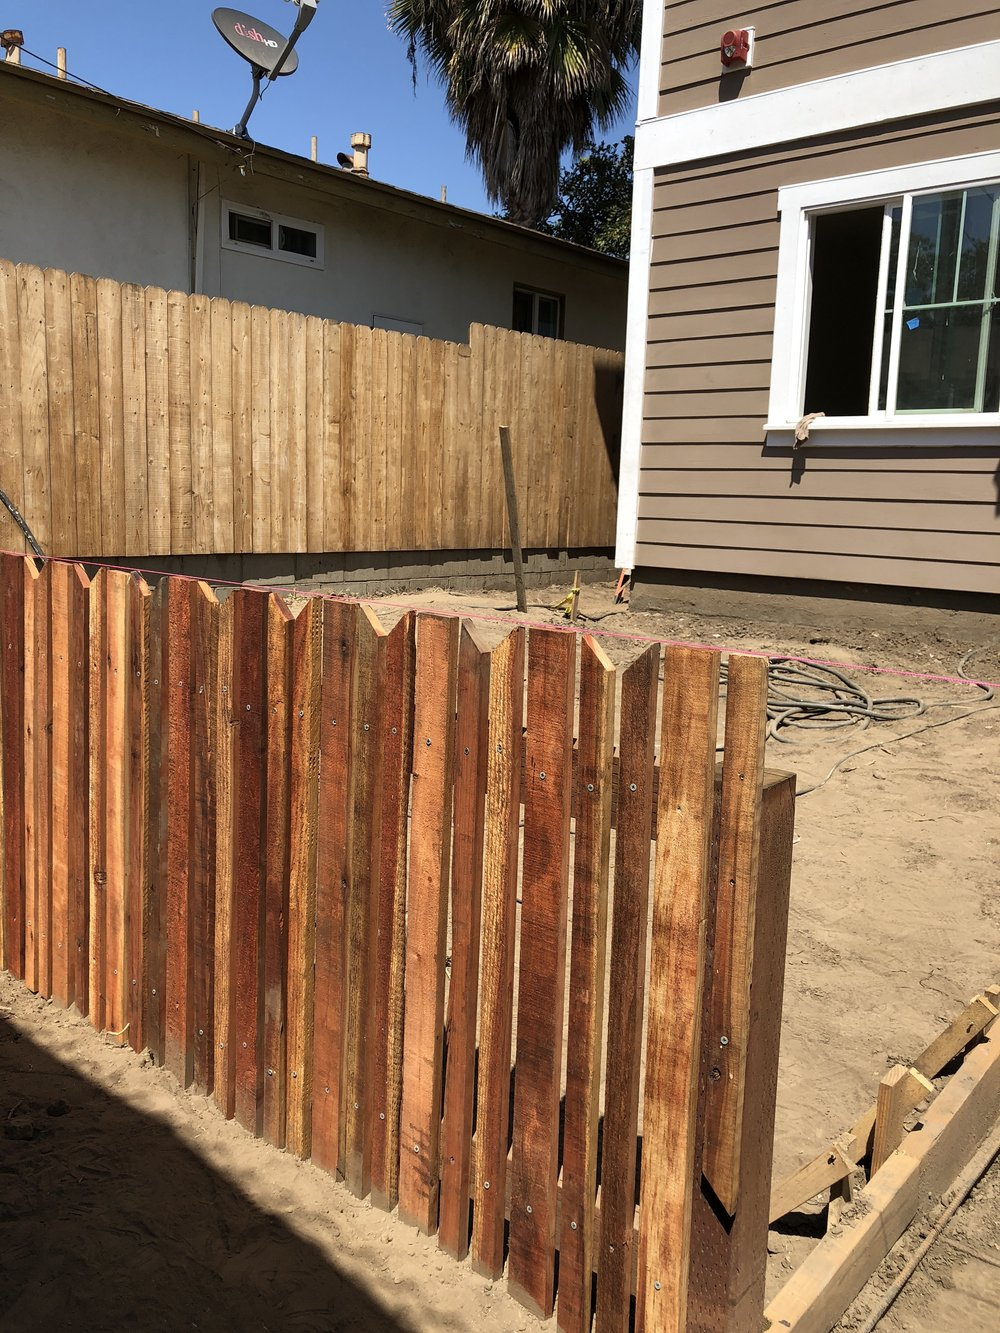 I learned how to build a fence! Who wants one? ;)